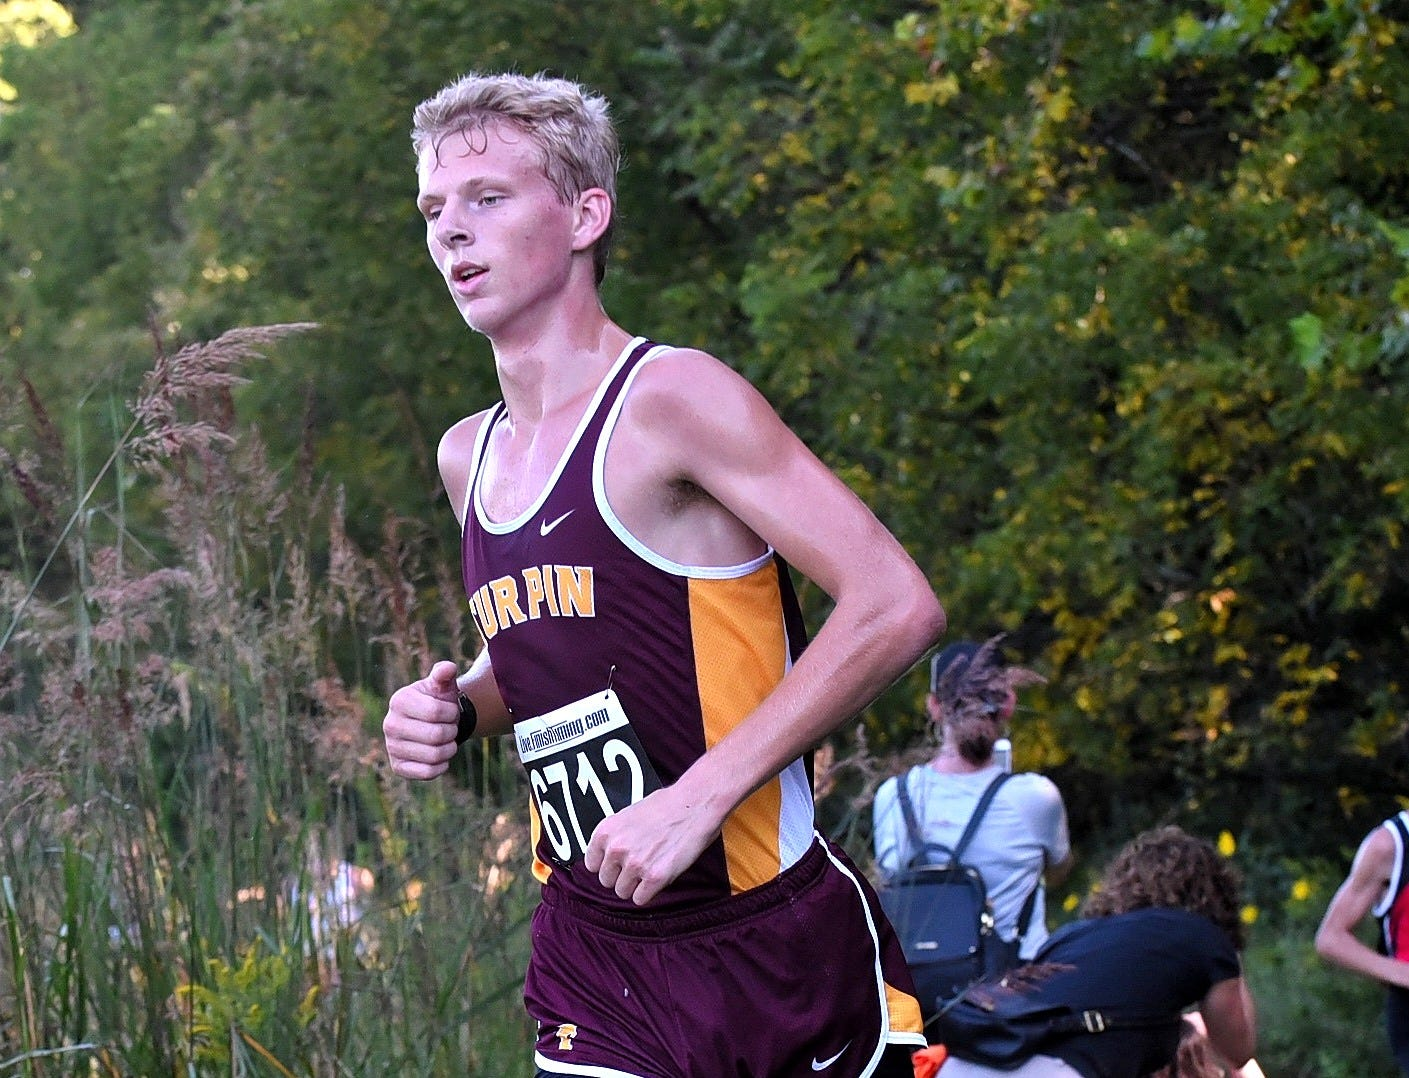 Turpin's John Morton cuts a corner while running at the 2018 Milford Cross Country Invitational, Sept. 15, 2018.